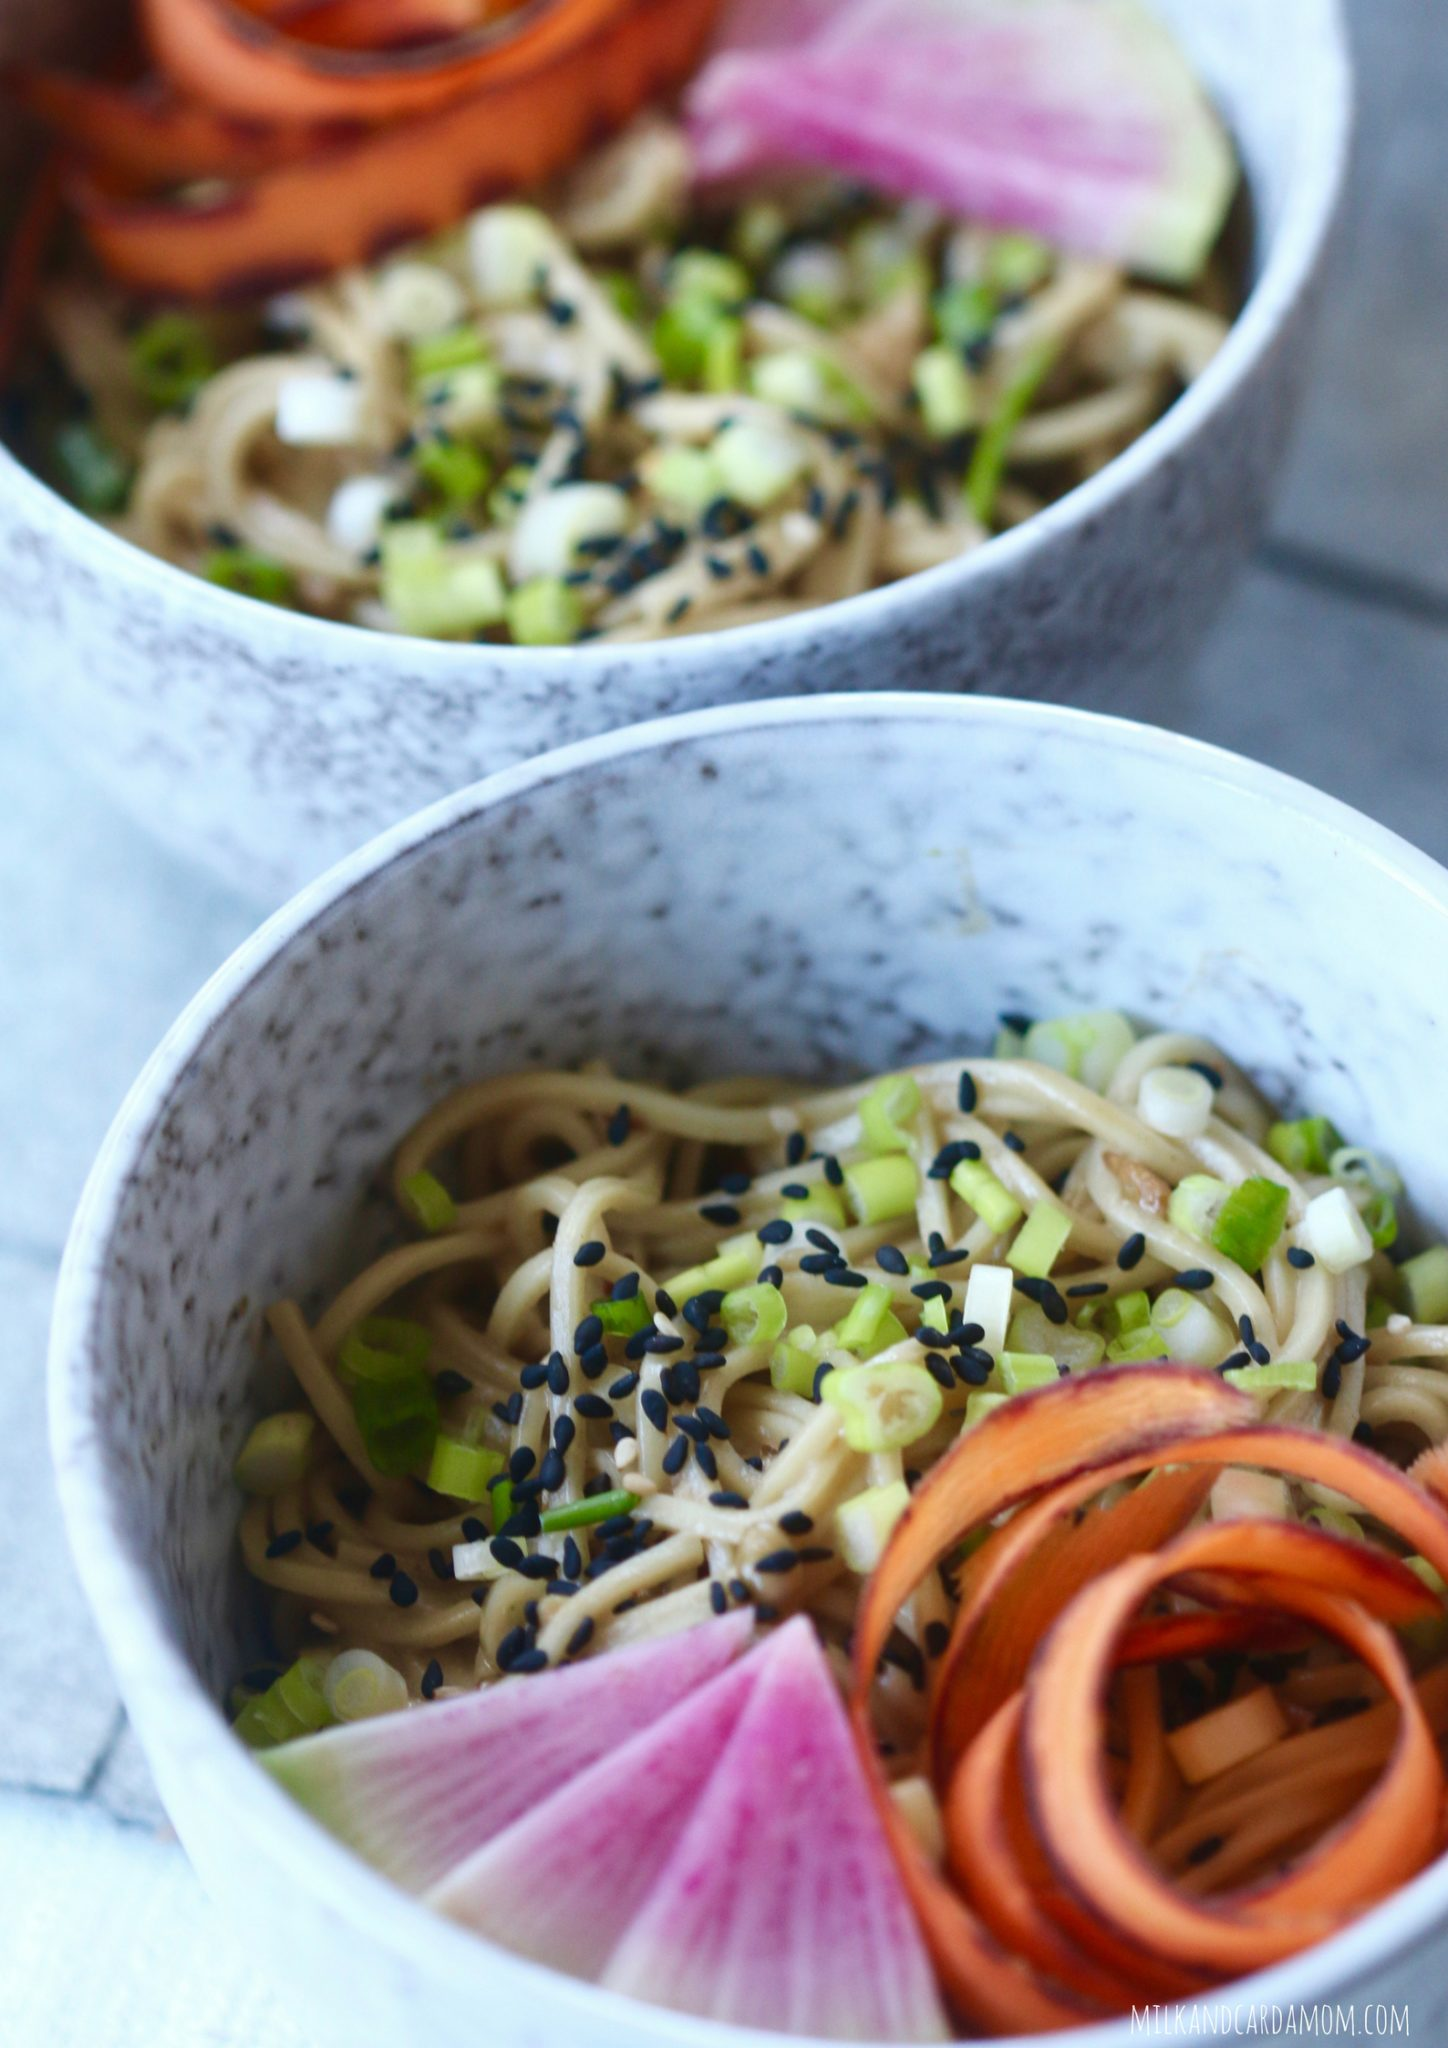 10 Minute Scallion Noodles (Peanut-Free)